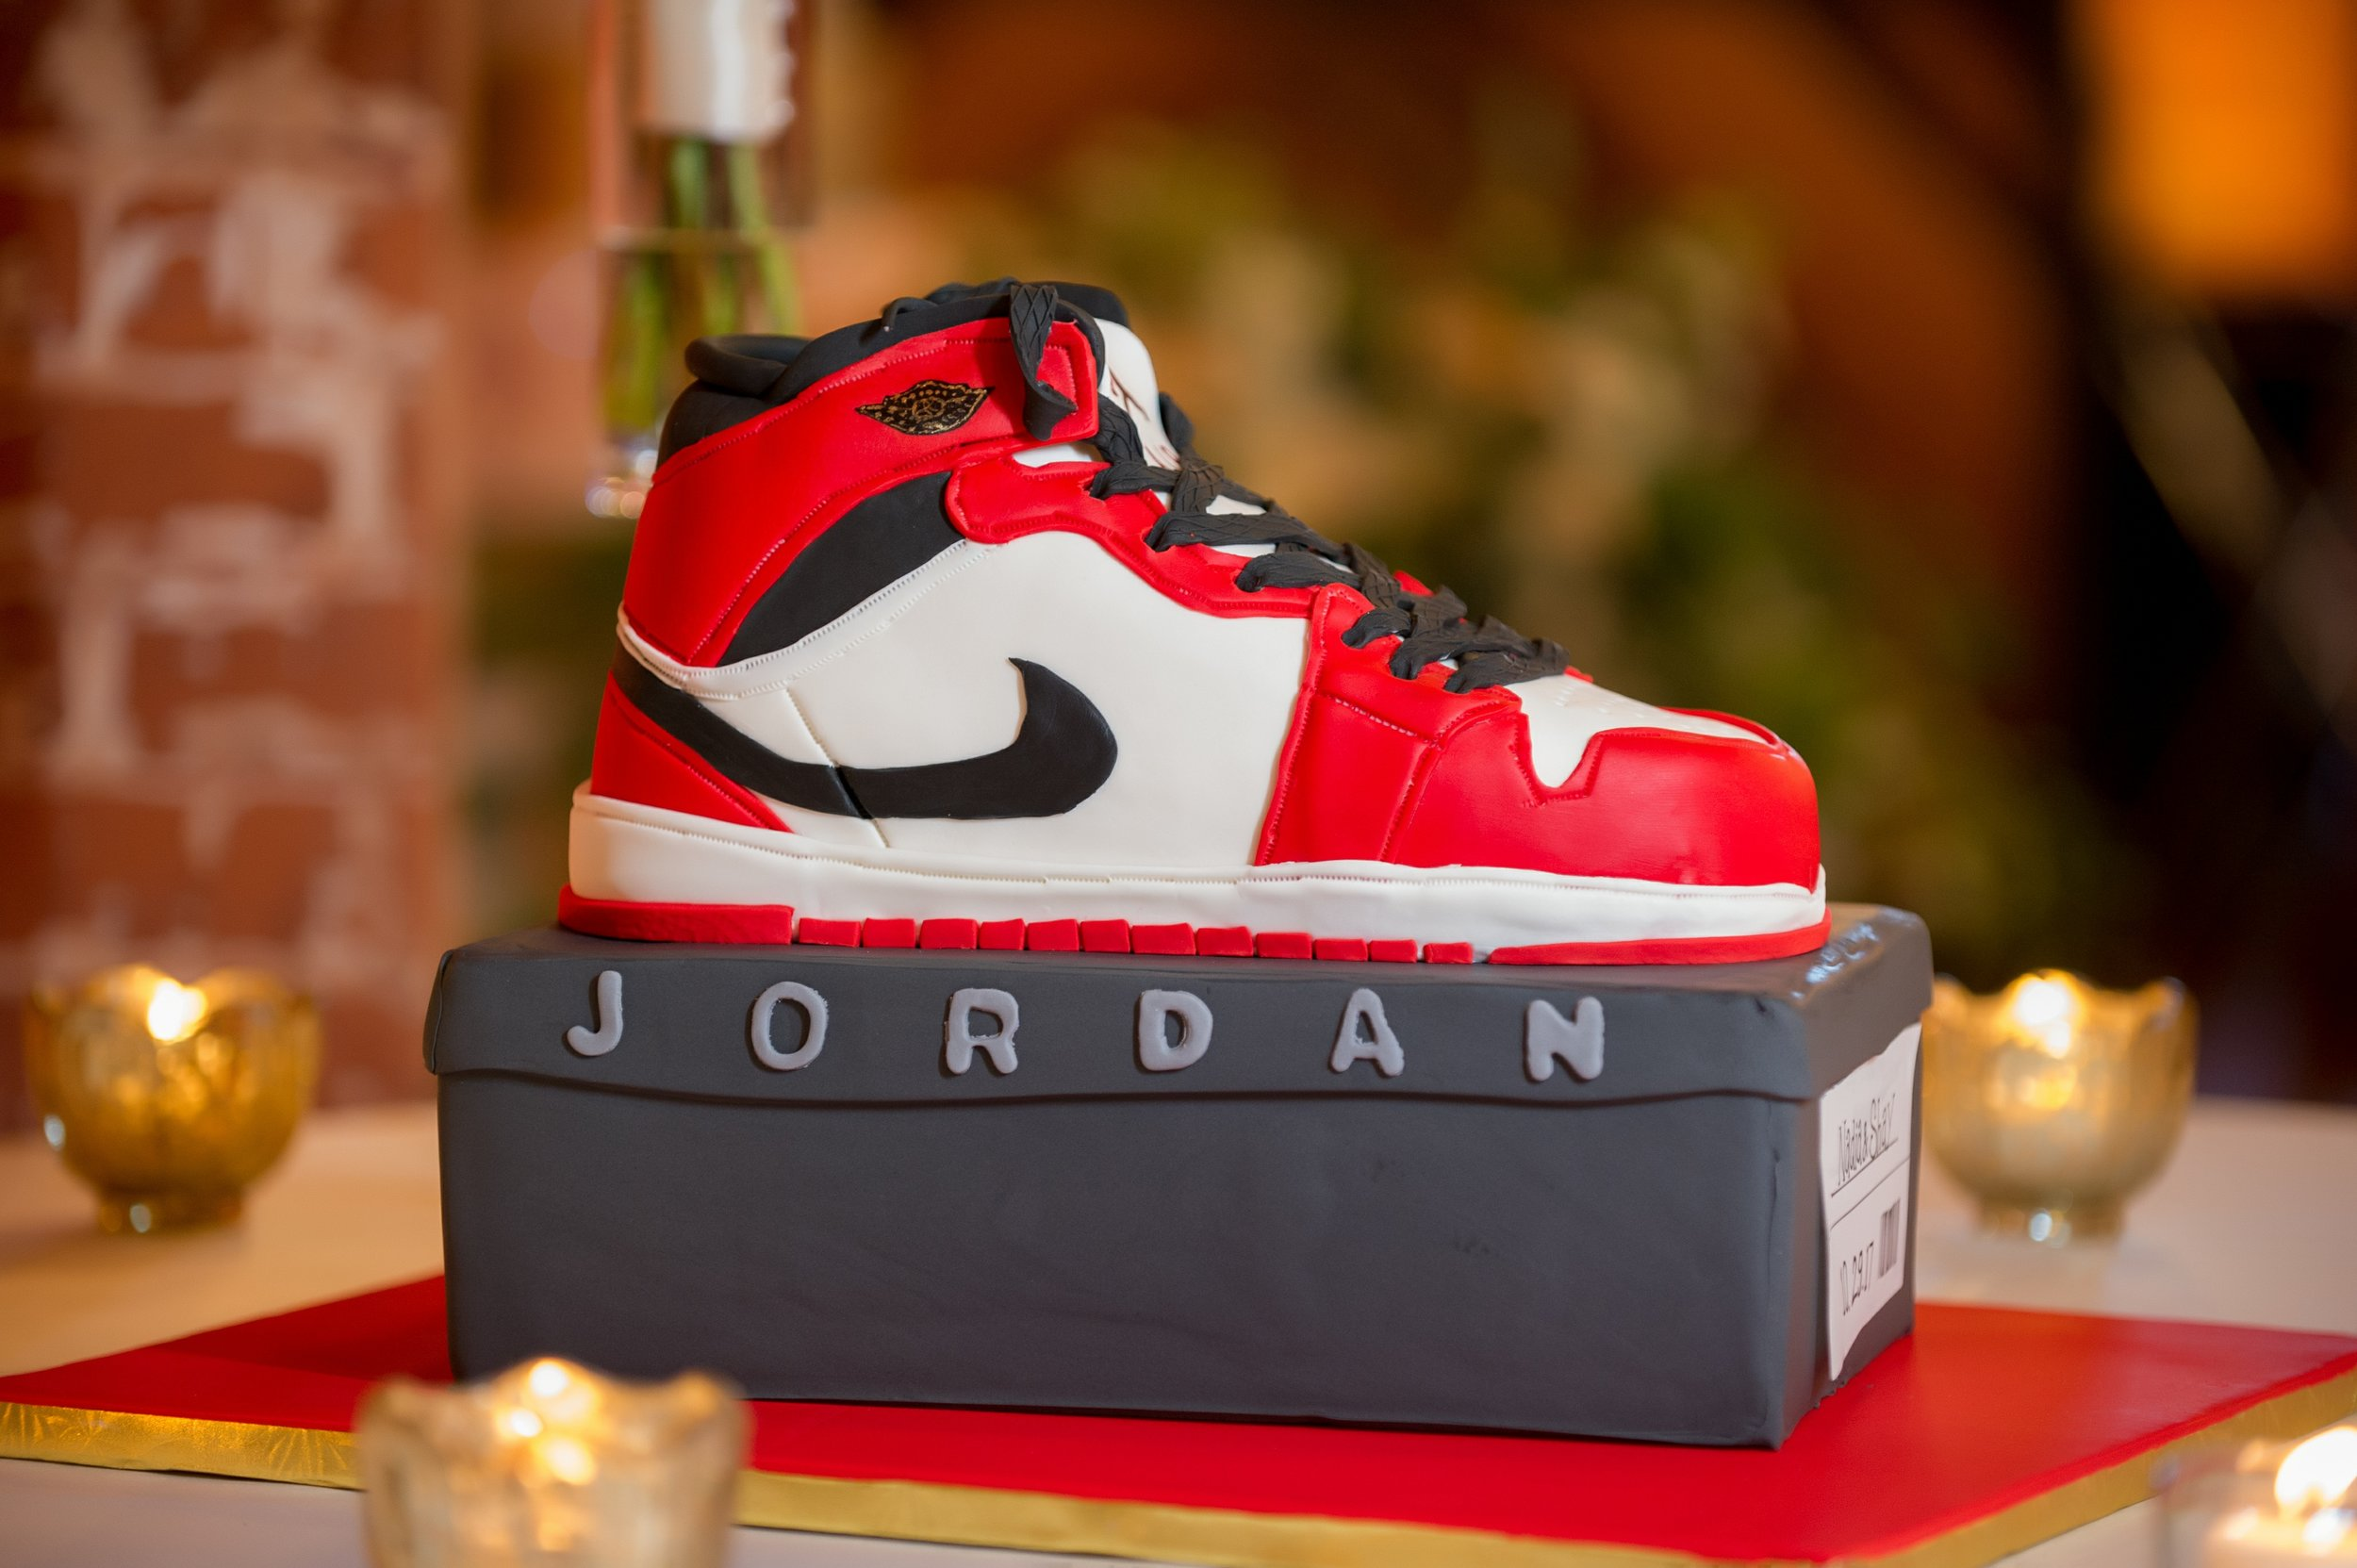 A special groom's cake modeled after a favorite real life pair of Jordans belonging to the groom.